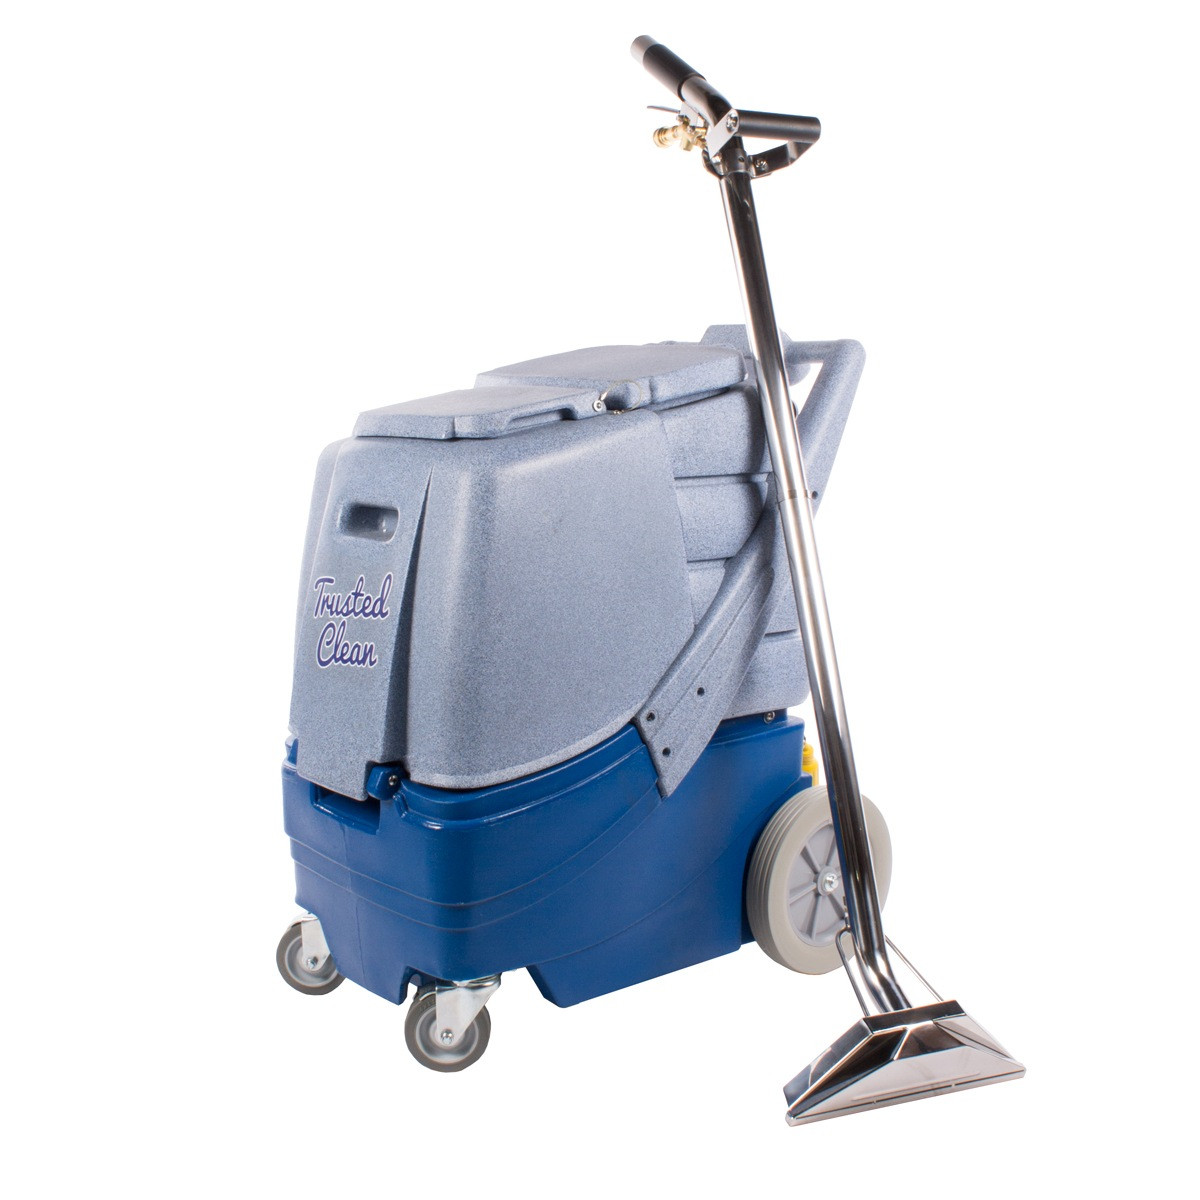 Trusted Clean 100 Psi Non Heated Carpet Cleaning Extractor